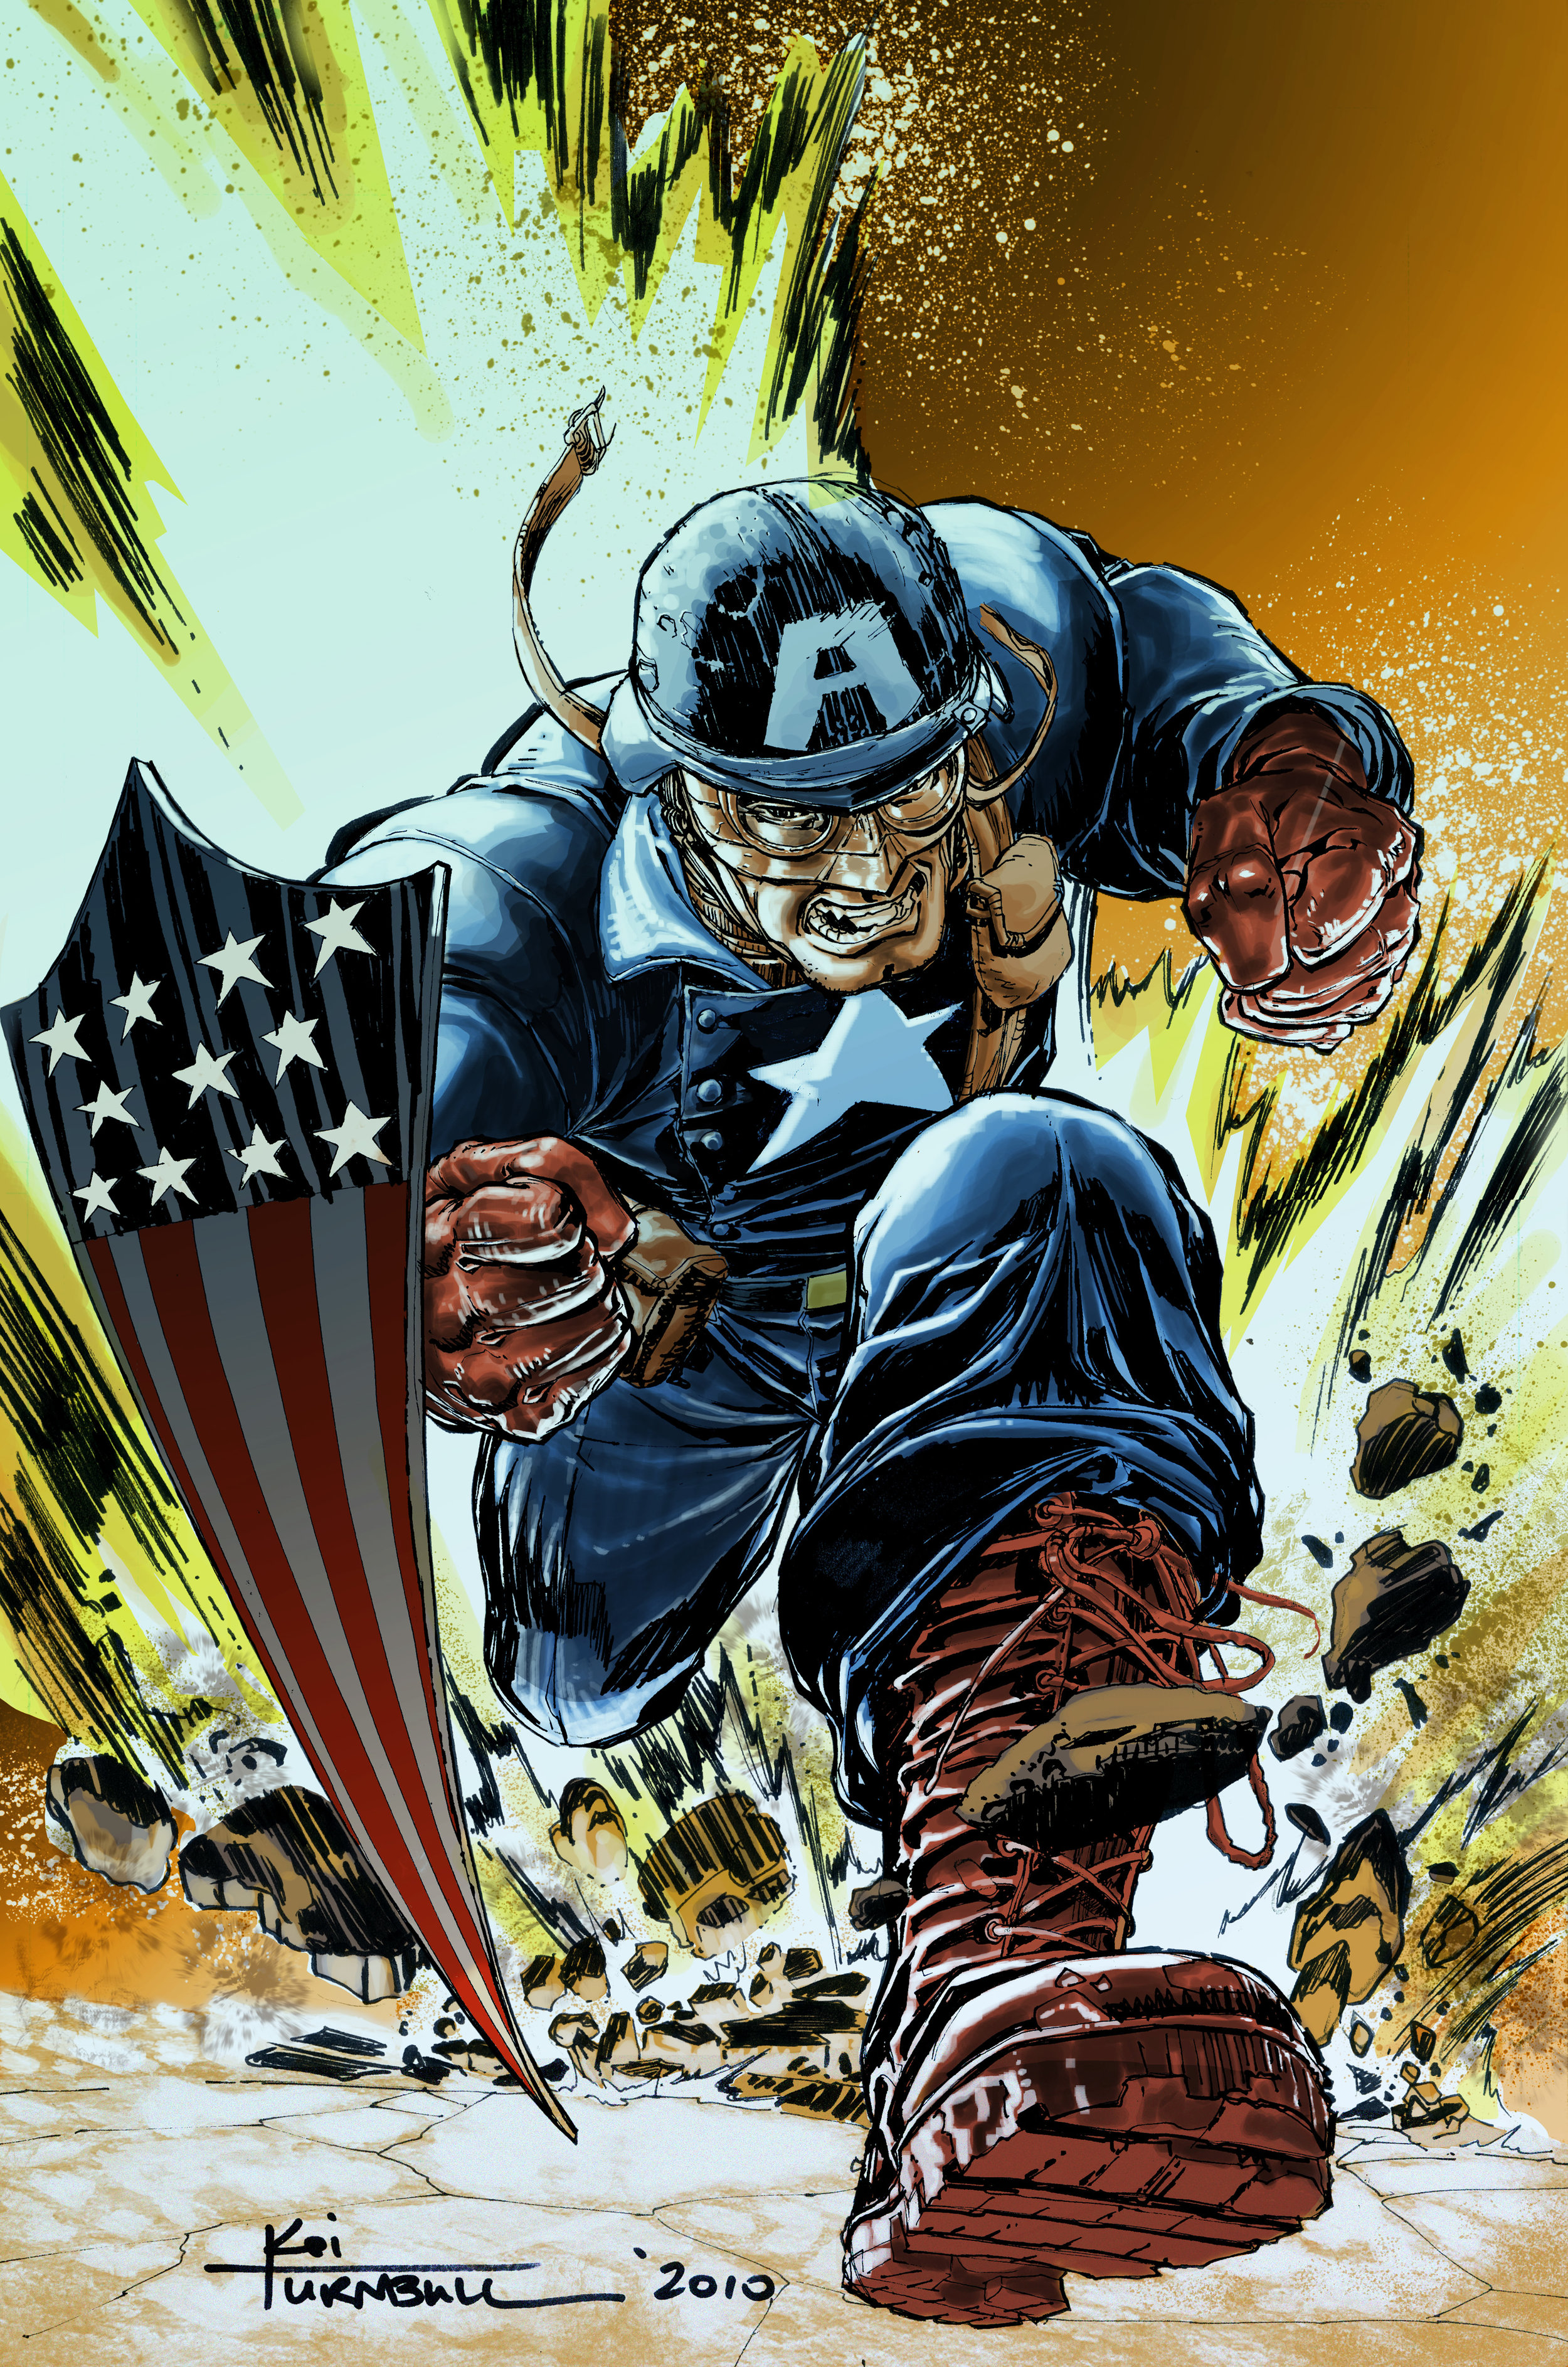 Captain America Final thought_300_11x17.jpg